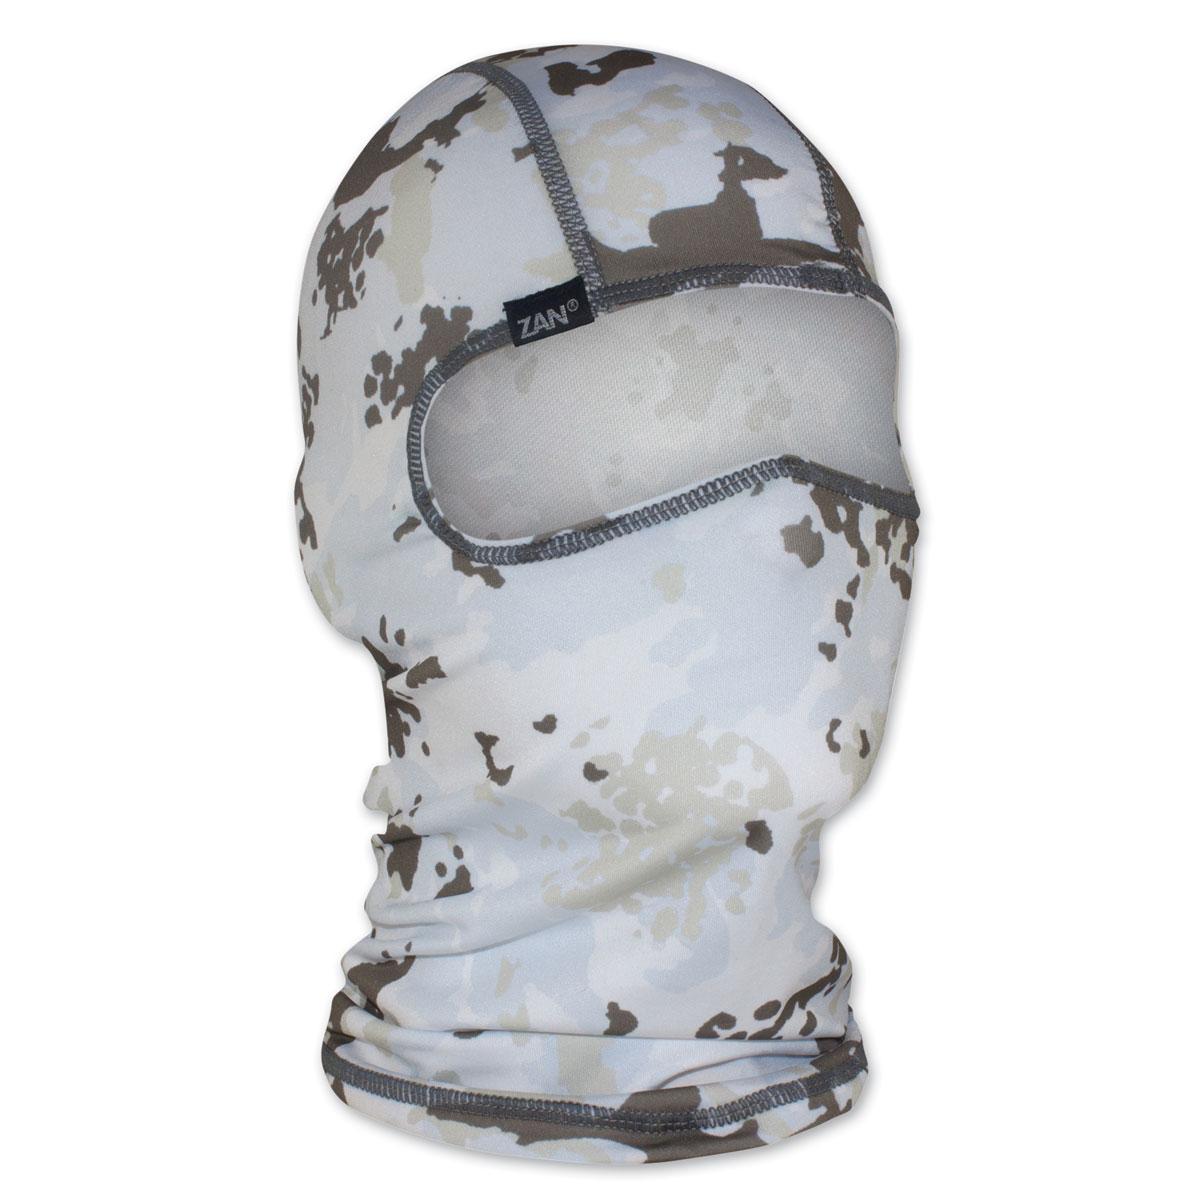 ZAN headgear Winter Camo Balaclava